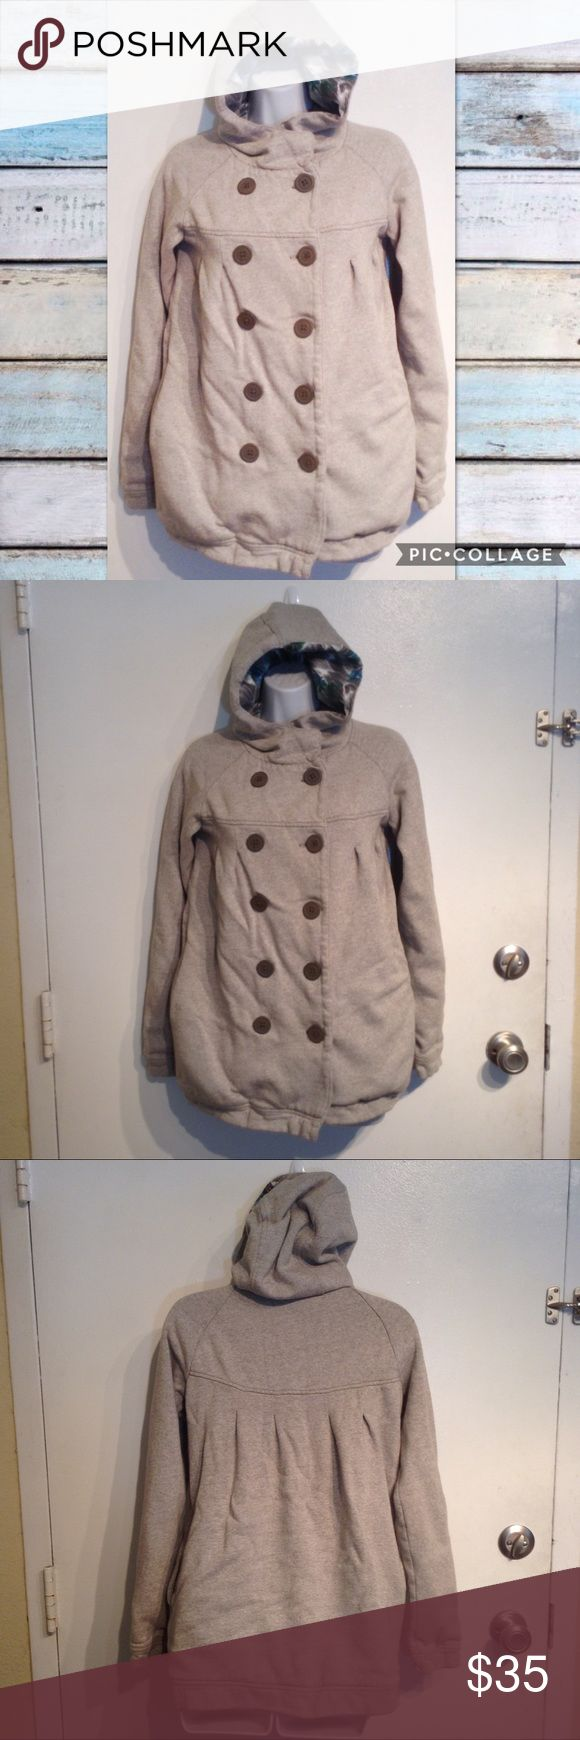 KIMCHI BLUE UO Grey Pea Coat Style Hooded Jacket Kimchi Blue from Urban Outfitters. Heathered grey pea coat style hooded jacket. 100% cotton. Has pockets. Snaps at neck for added warmth. Warm and cozy. Size small. No modeling. Smoke free home, I do discount bundles. Urban Outfitters Jackets & Coats Pea Coats